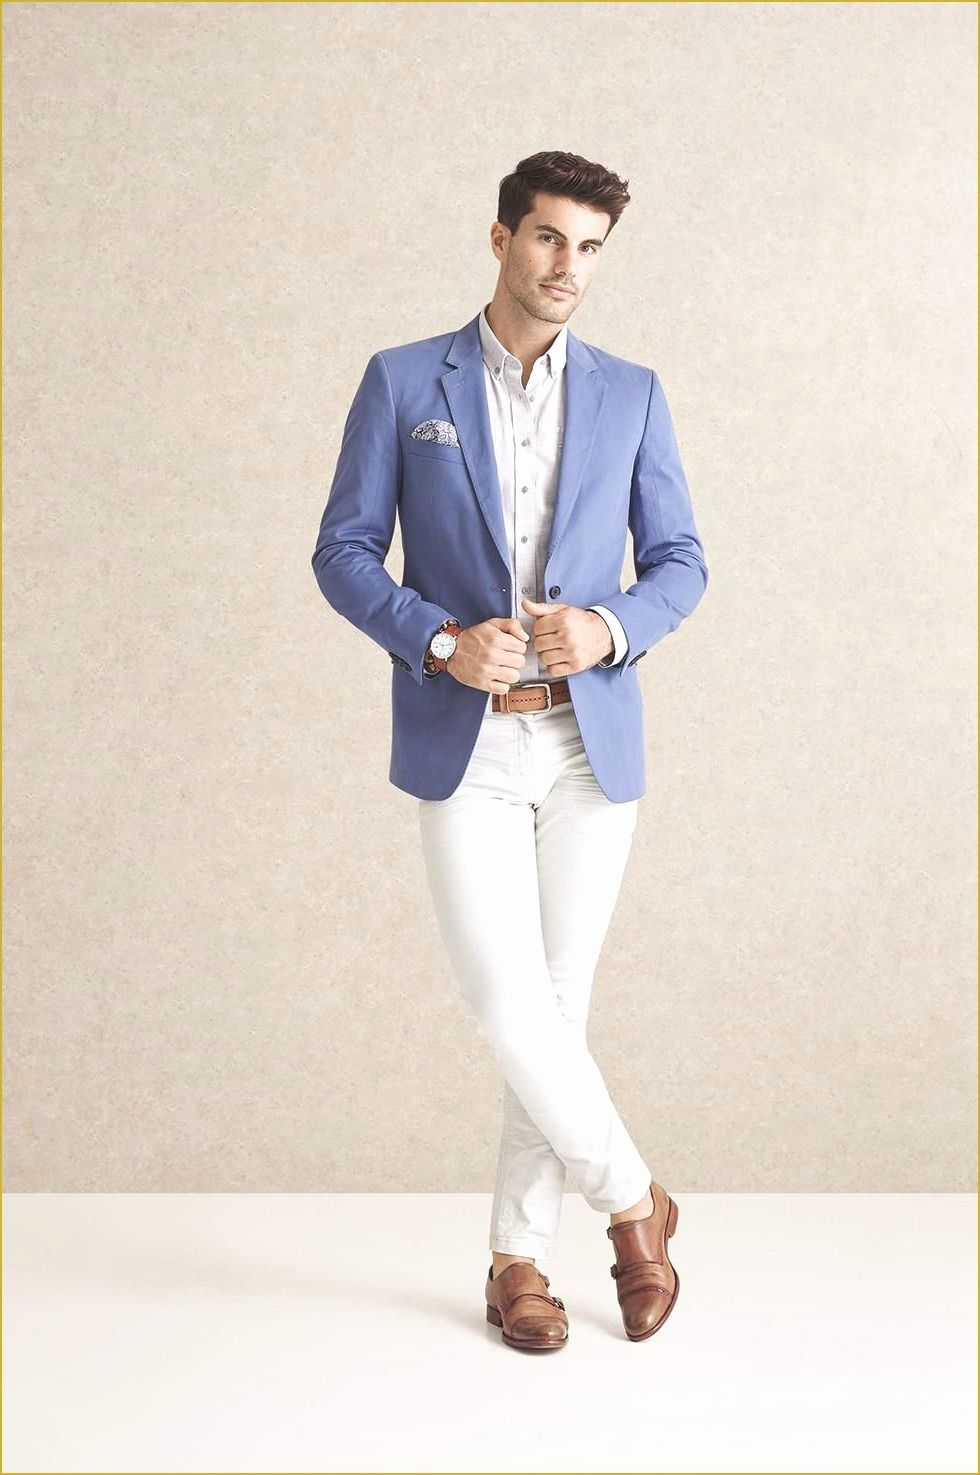 Mens Beach Wedding Guest Attire in 2020 (With images